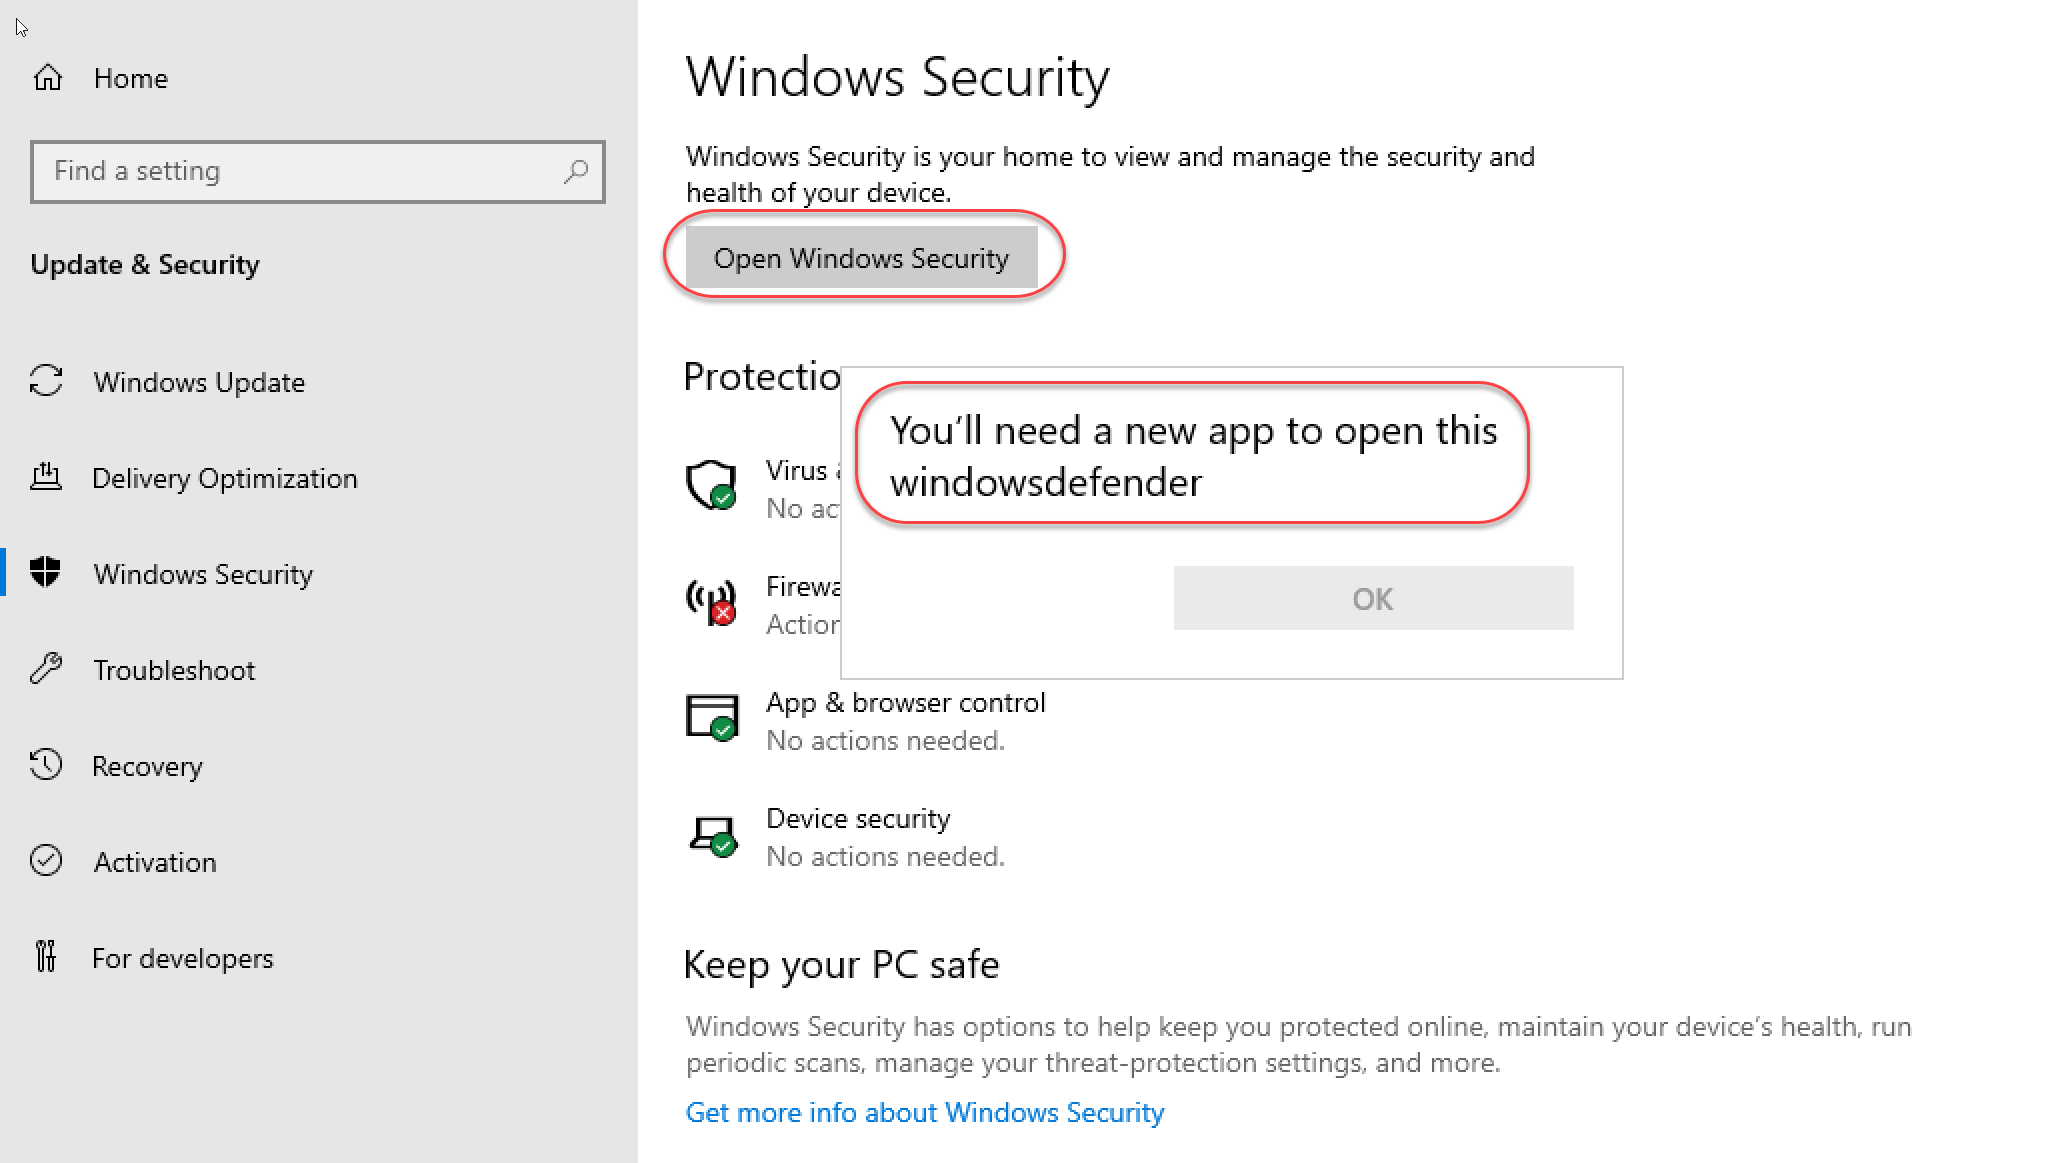 You'll need a new app to open this windowsdefender